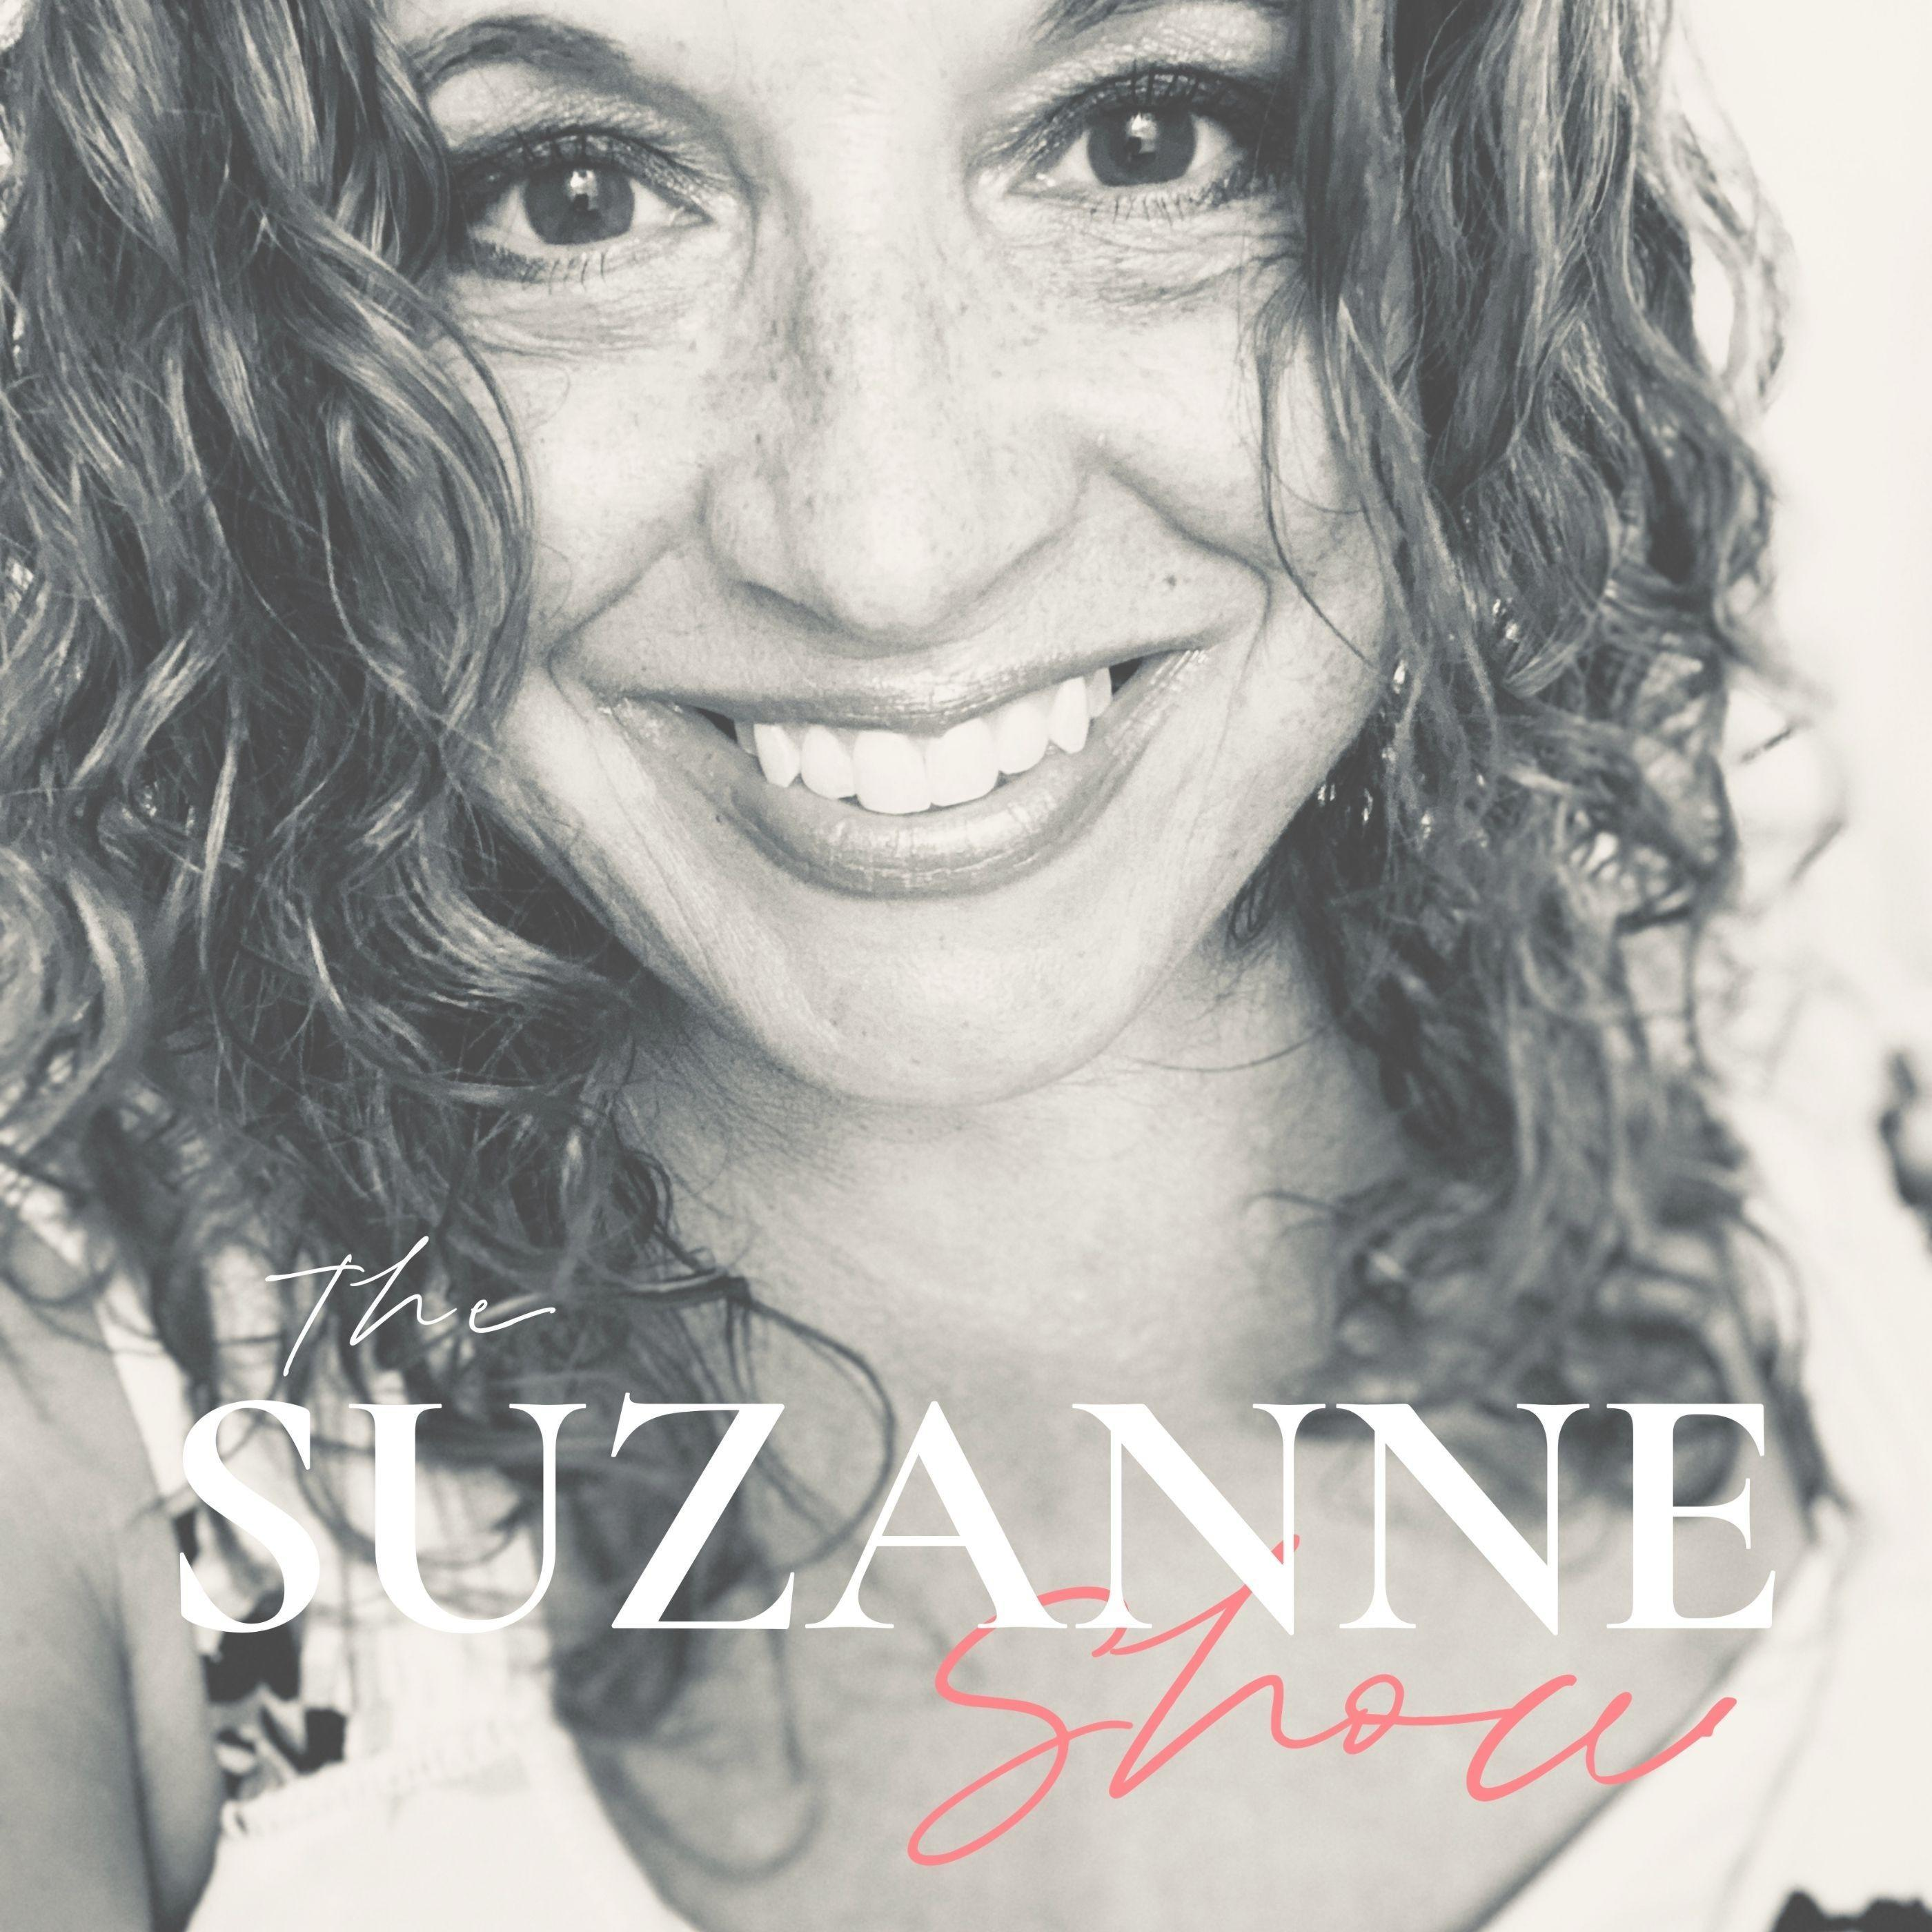 The Suzanne Show